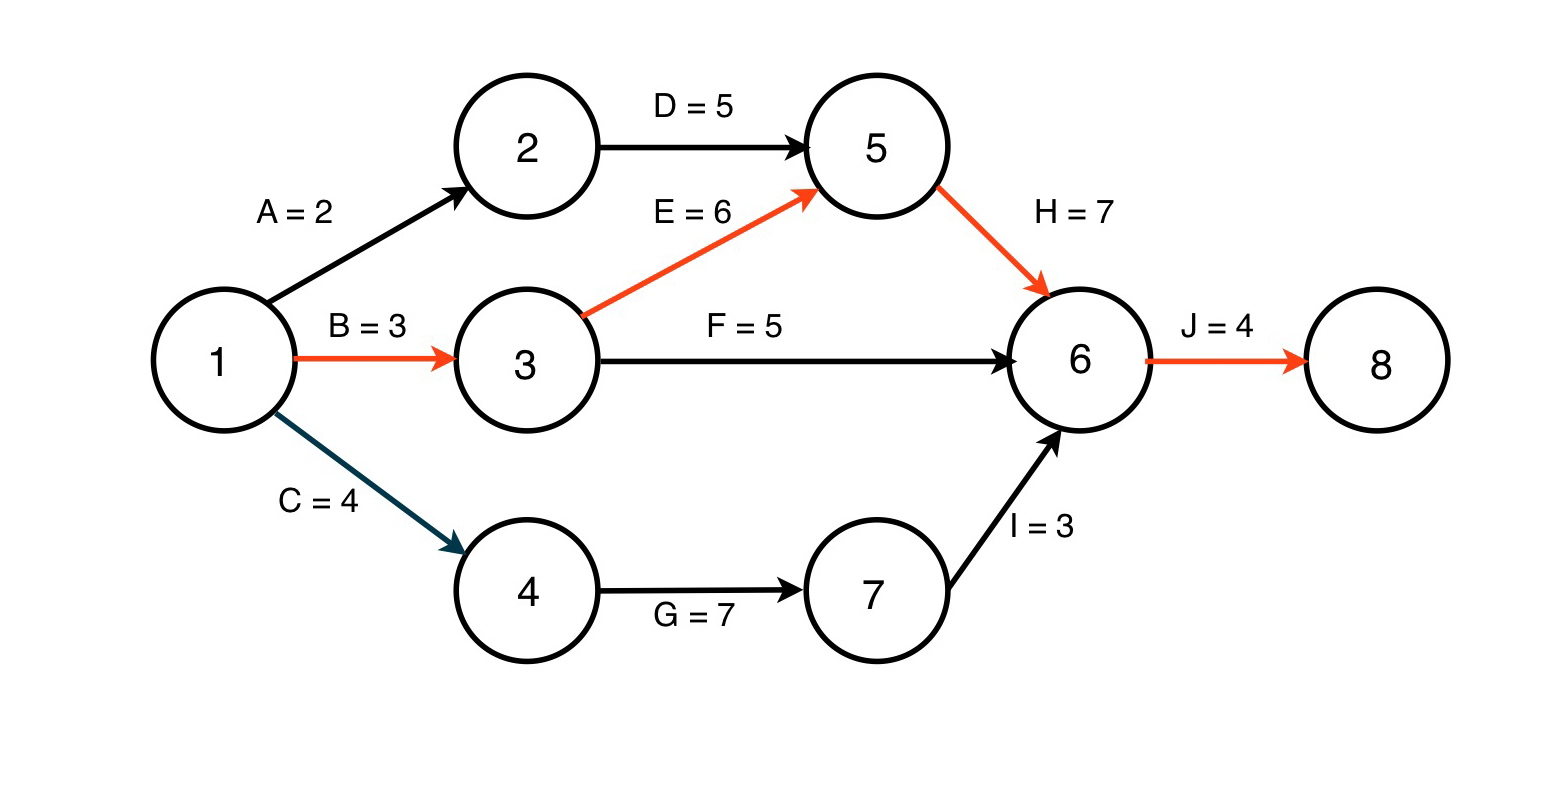 hight resolution of in this simple example the activities are on the arrows and you can see that there are four possible paths tracing each path and adding up the time for